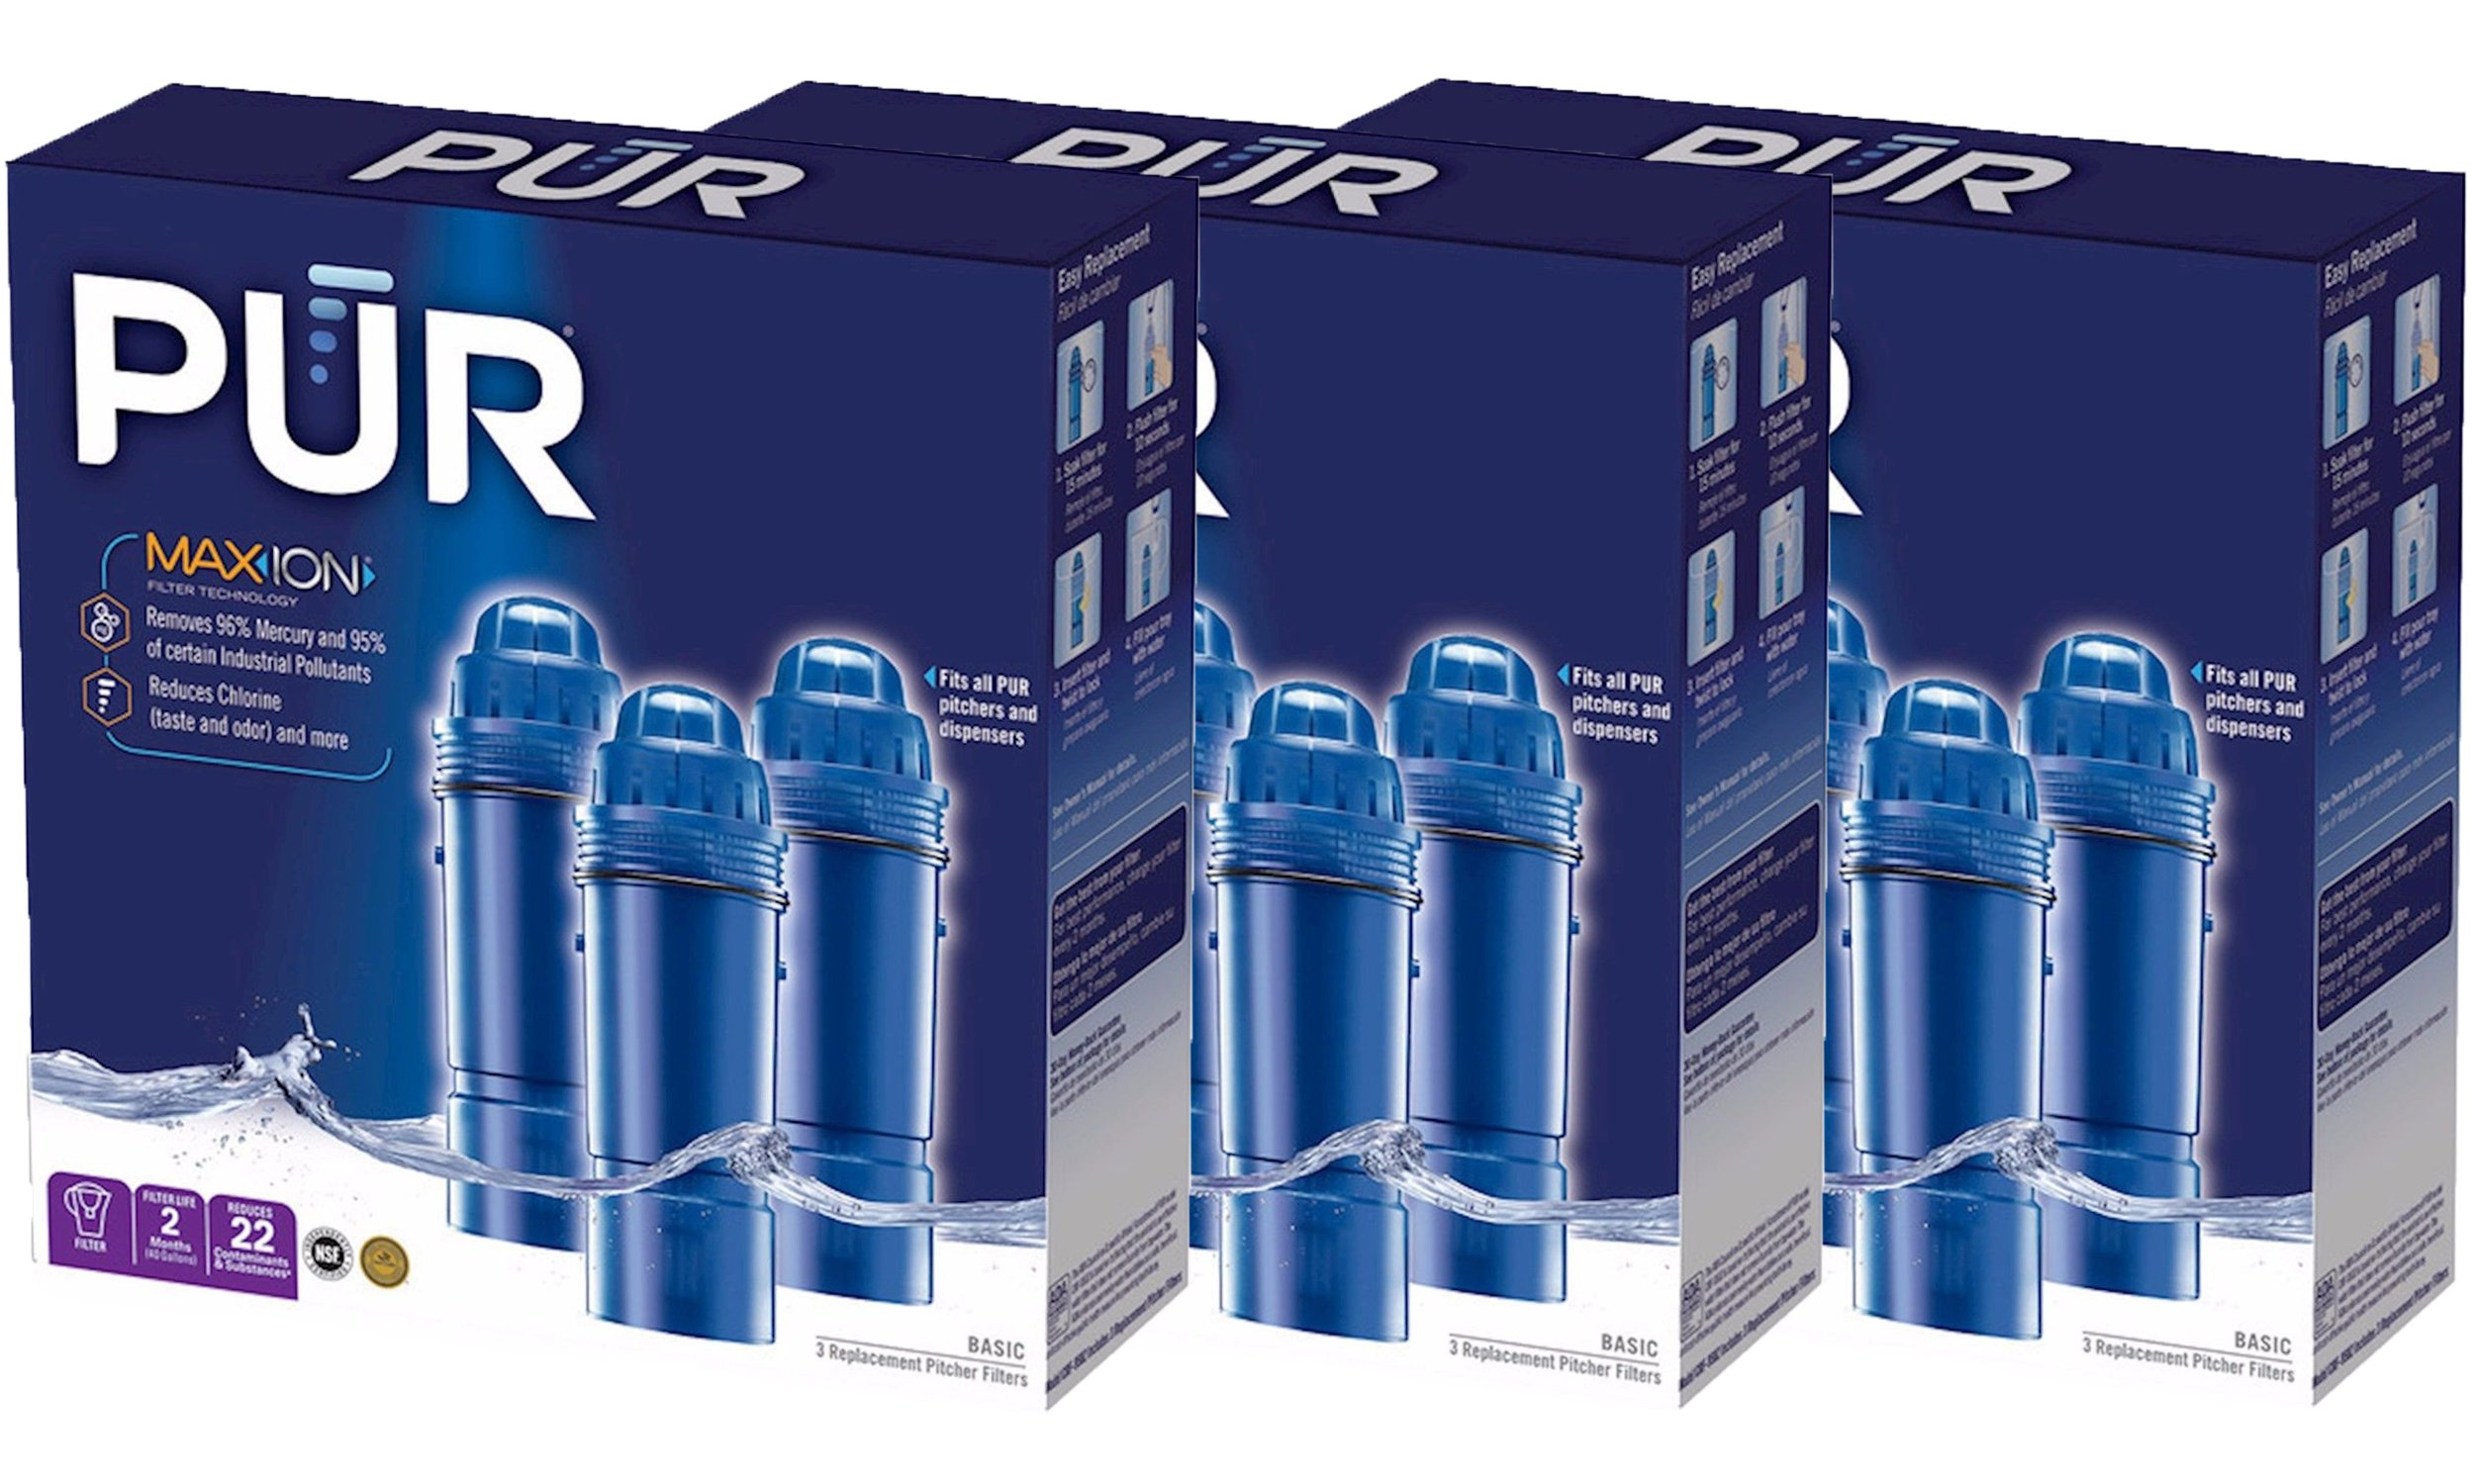 PUR Water Filters Provide Up to 120 Gallons of Clean Water CRF-950Z-3 | Fits Any Pitcher Replacement or Dispensers (PACK OF 9) by PUR